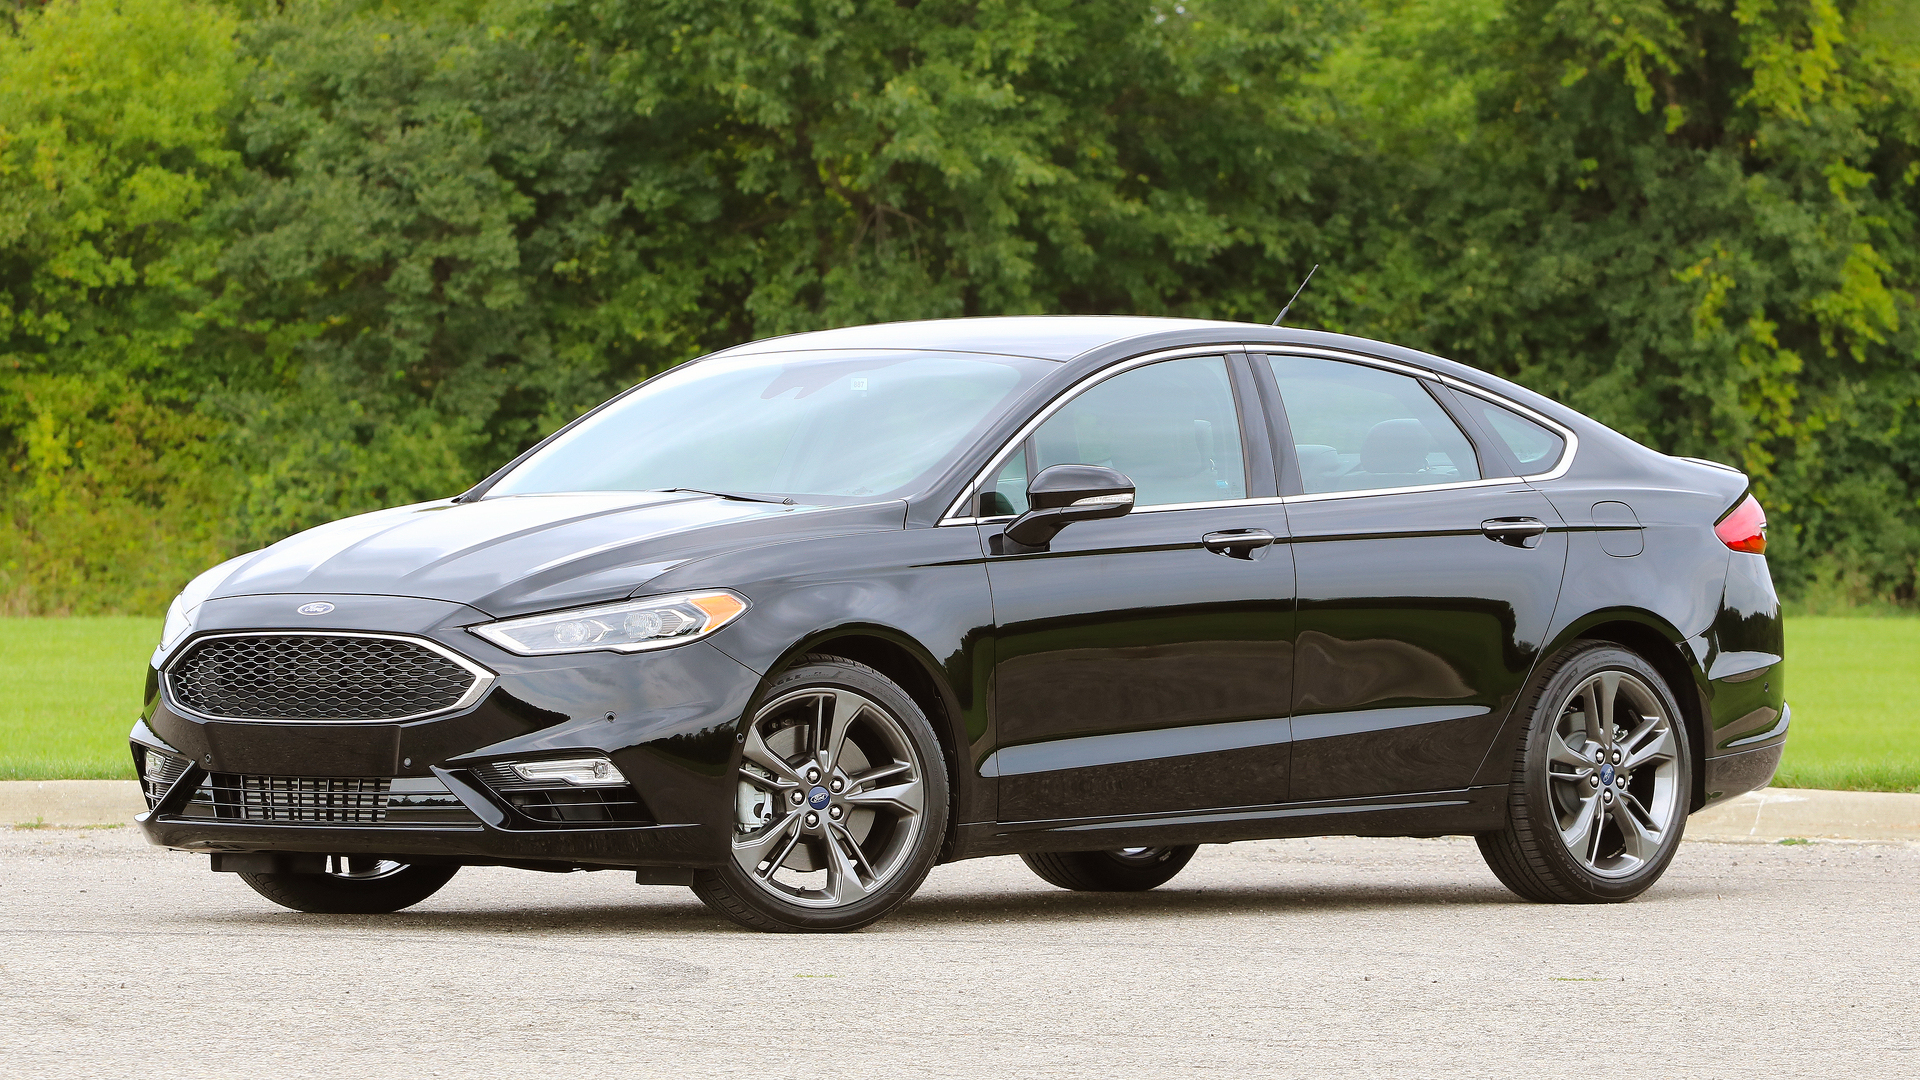 First Drive: 2017 Ford Fusion V6 Sport | Motor1.com